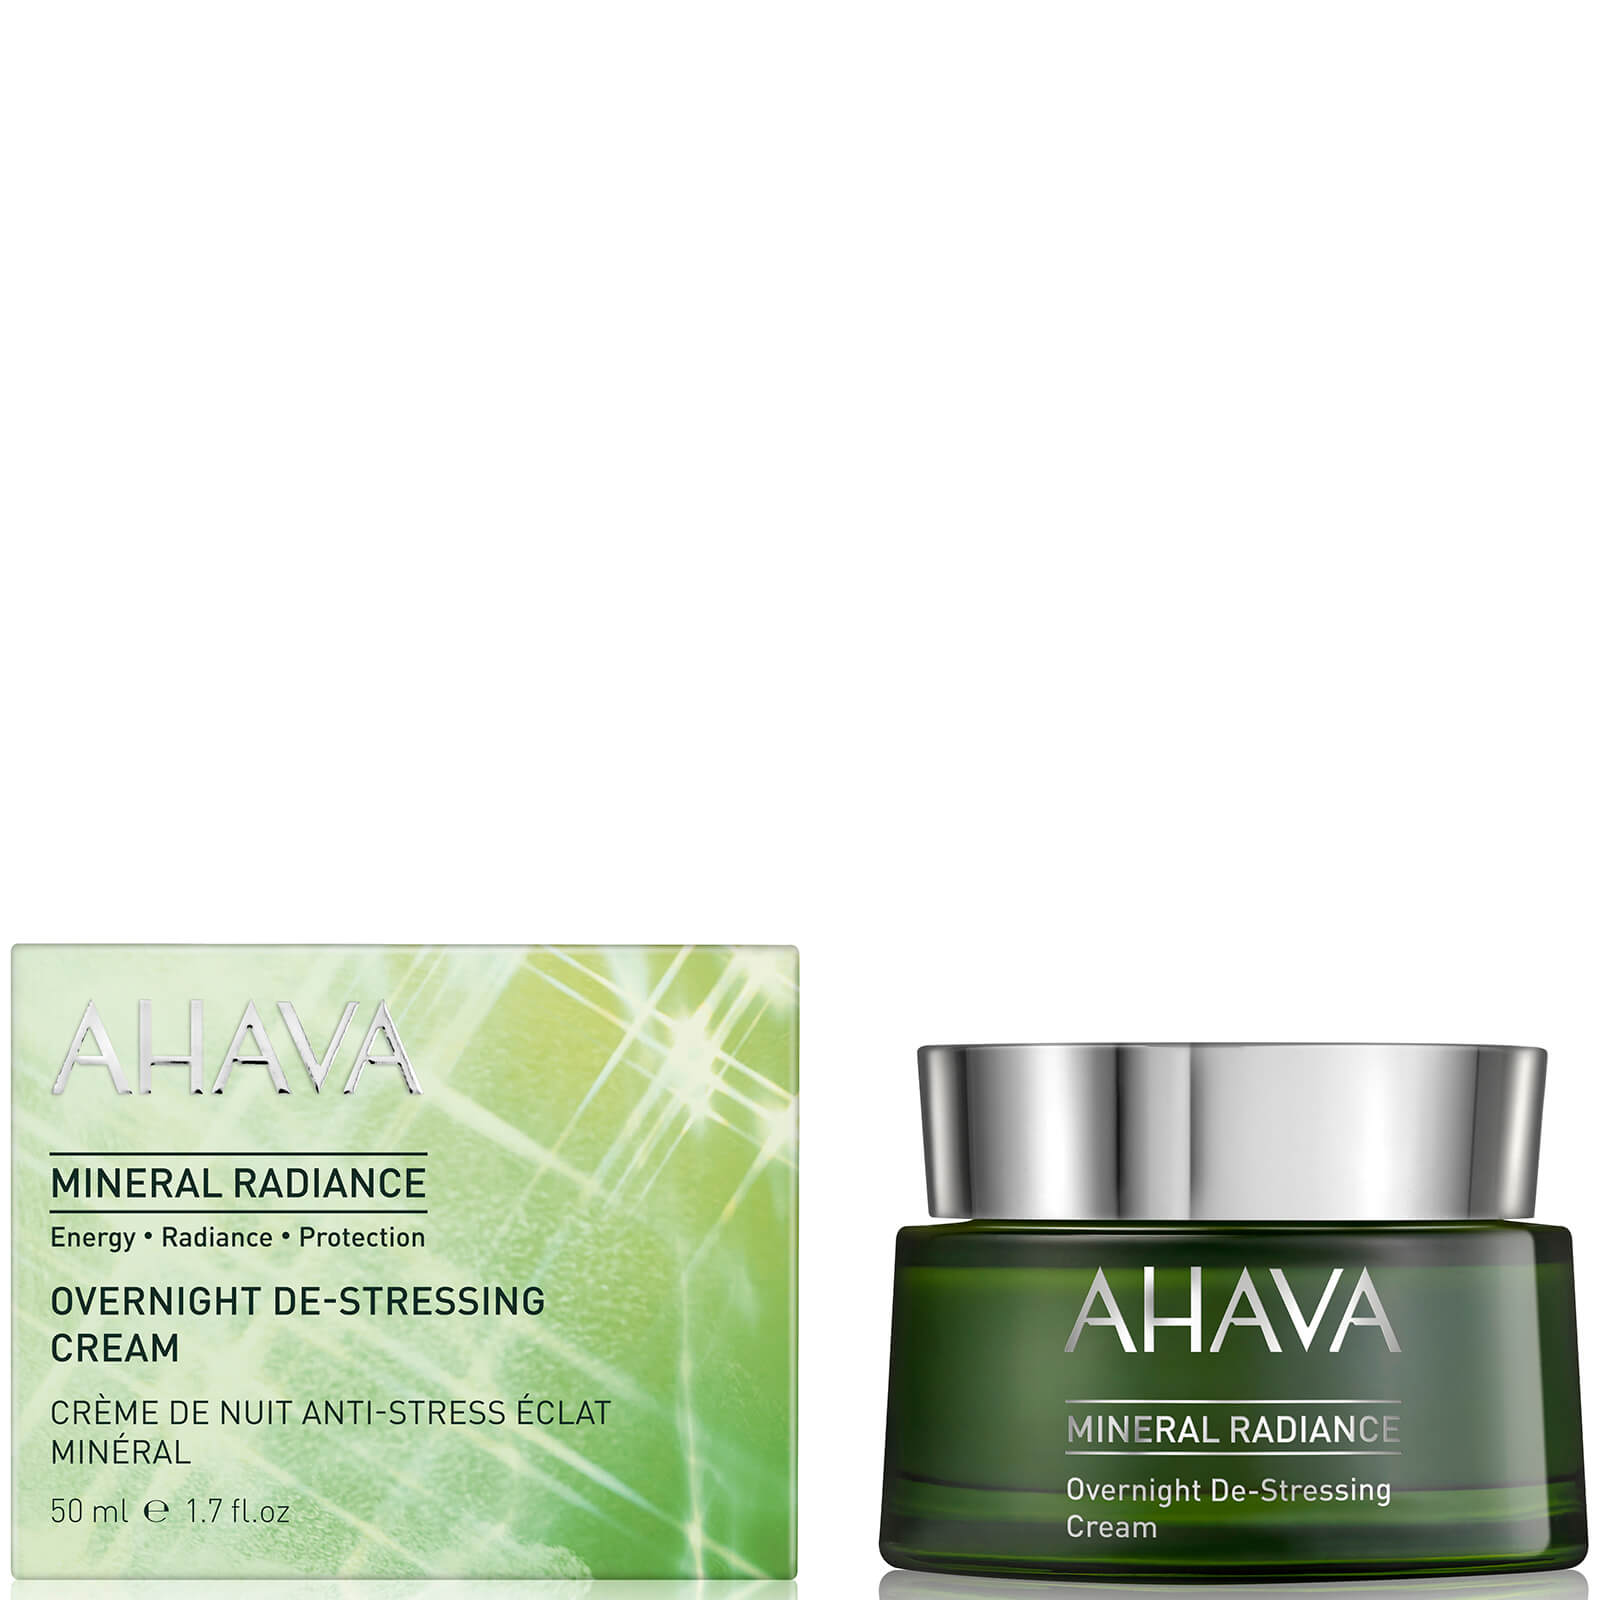 AHAVA Mineral Radiance Overnight De-Stressing Cream 1.7oz